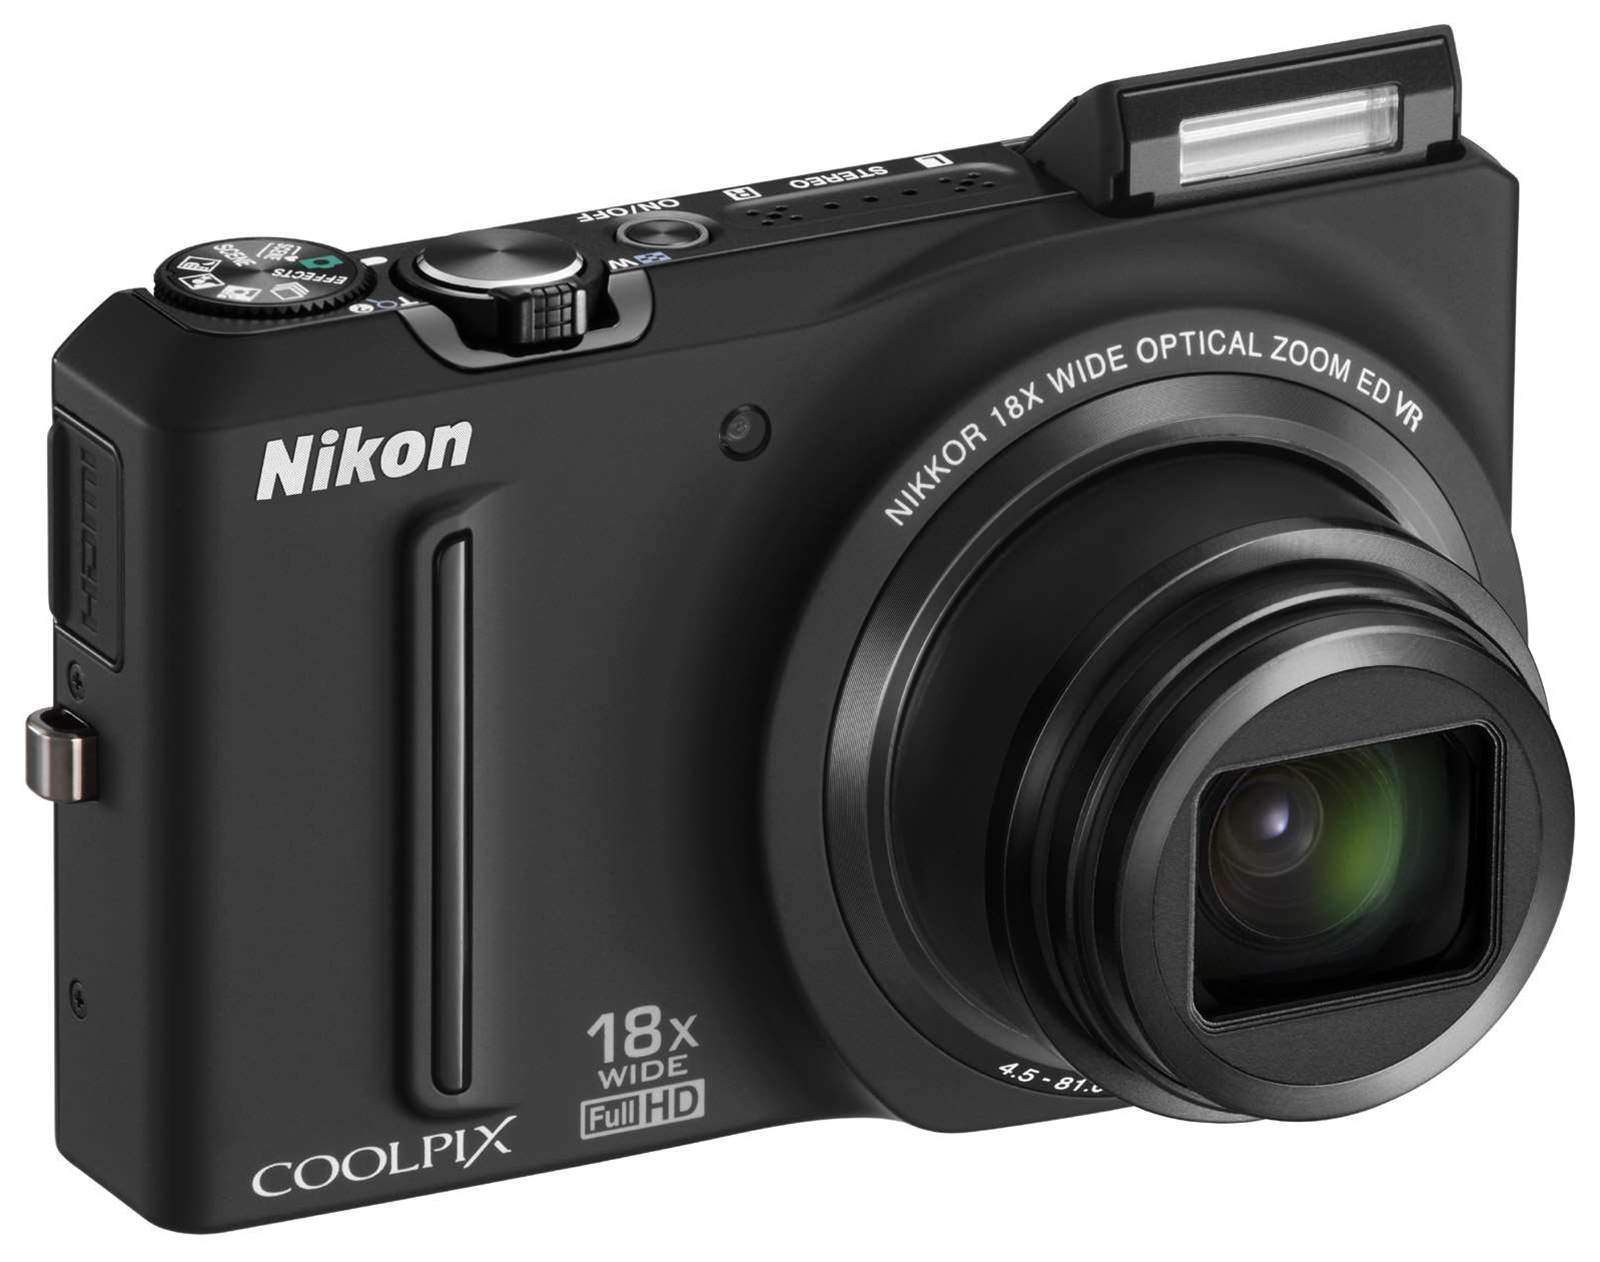 Nikon Coolpix S9100 review: king of the compacts?